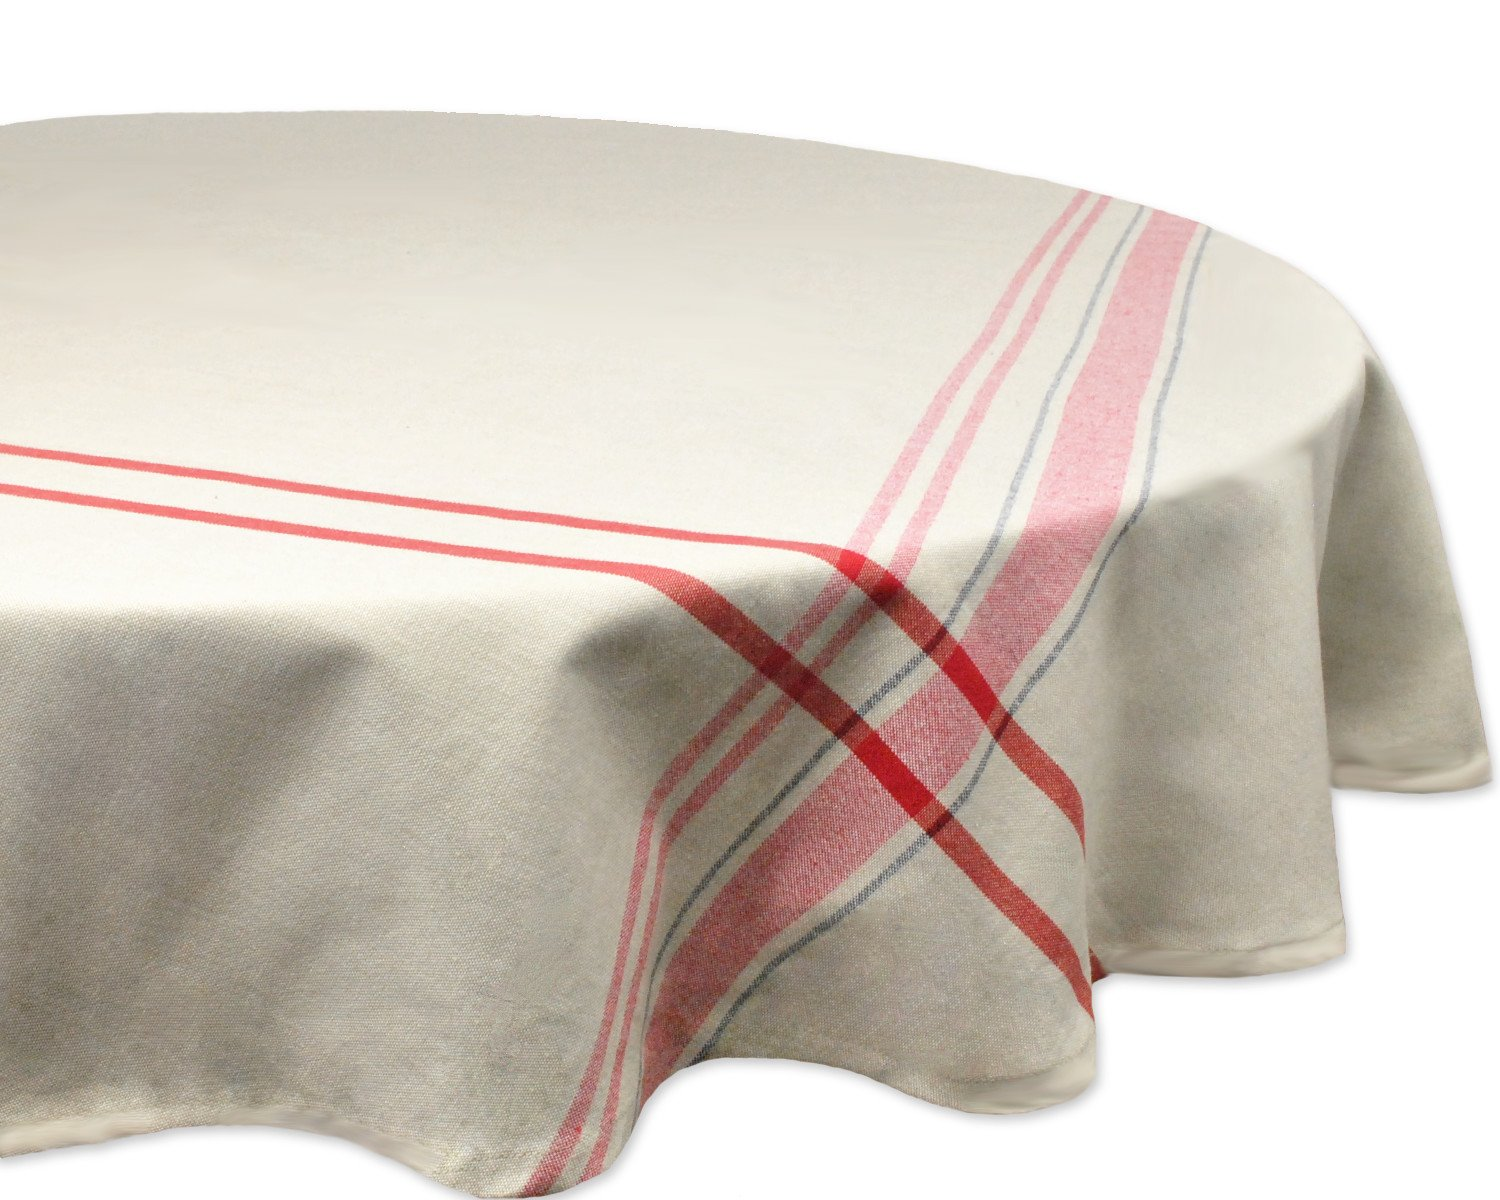 dii cotton machine washable everyday french round accent tablecloth stripe kitchen for dinner parties summer outdoor nics seats people clearance lawn furniture bedside table cover